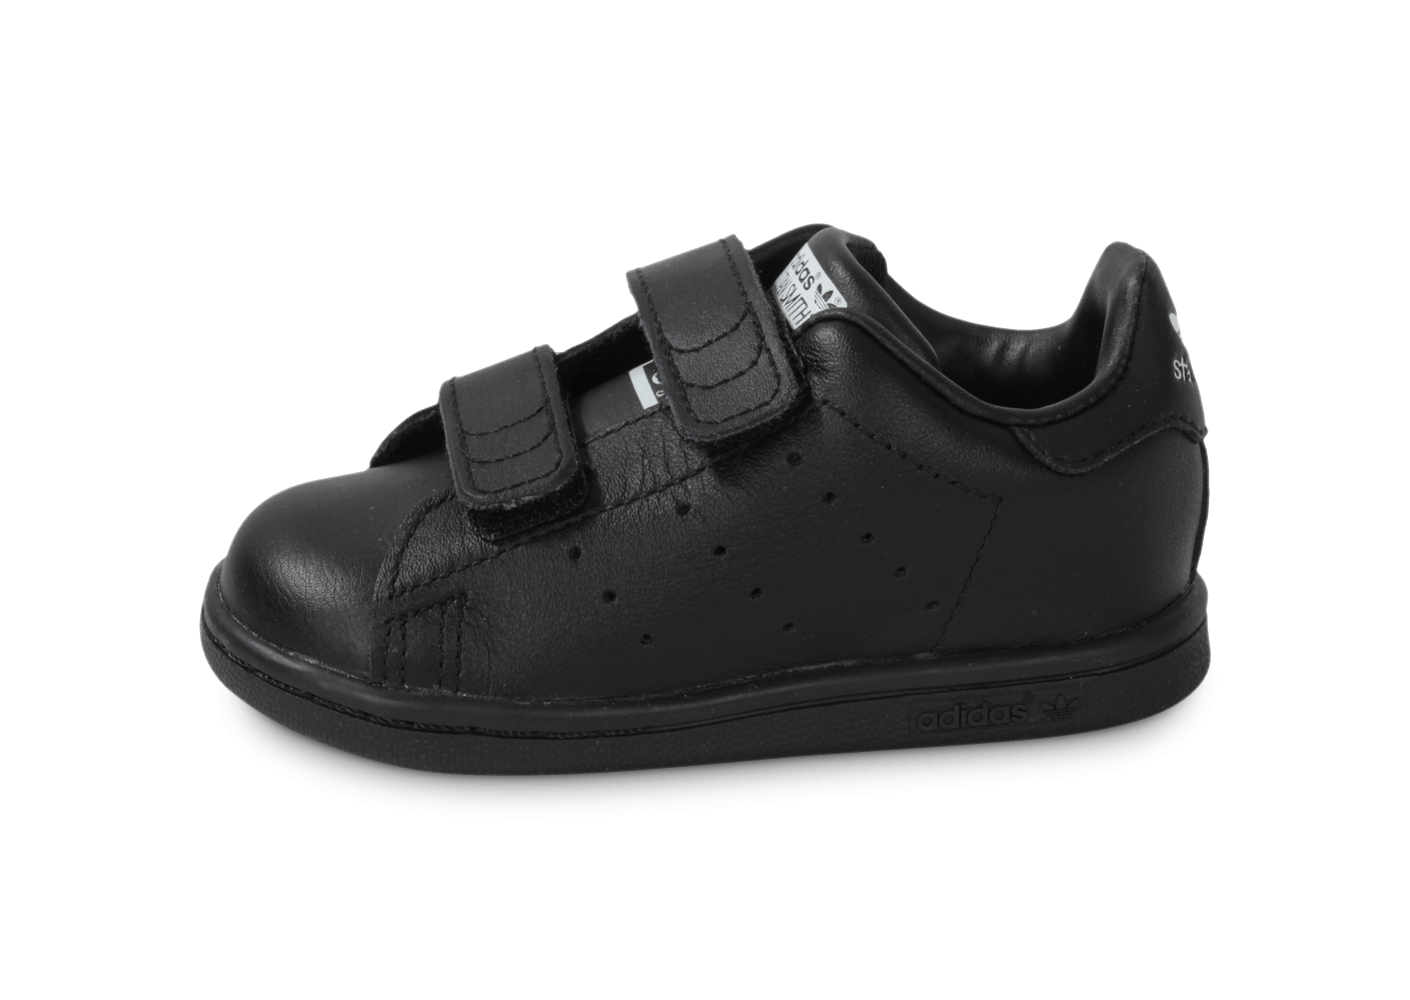 stan smith taille 26. Black Bedroom Furniture Sets. Home Design Ideas